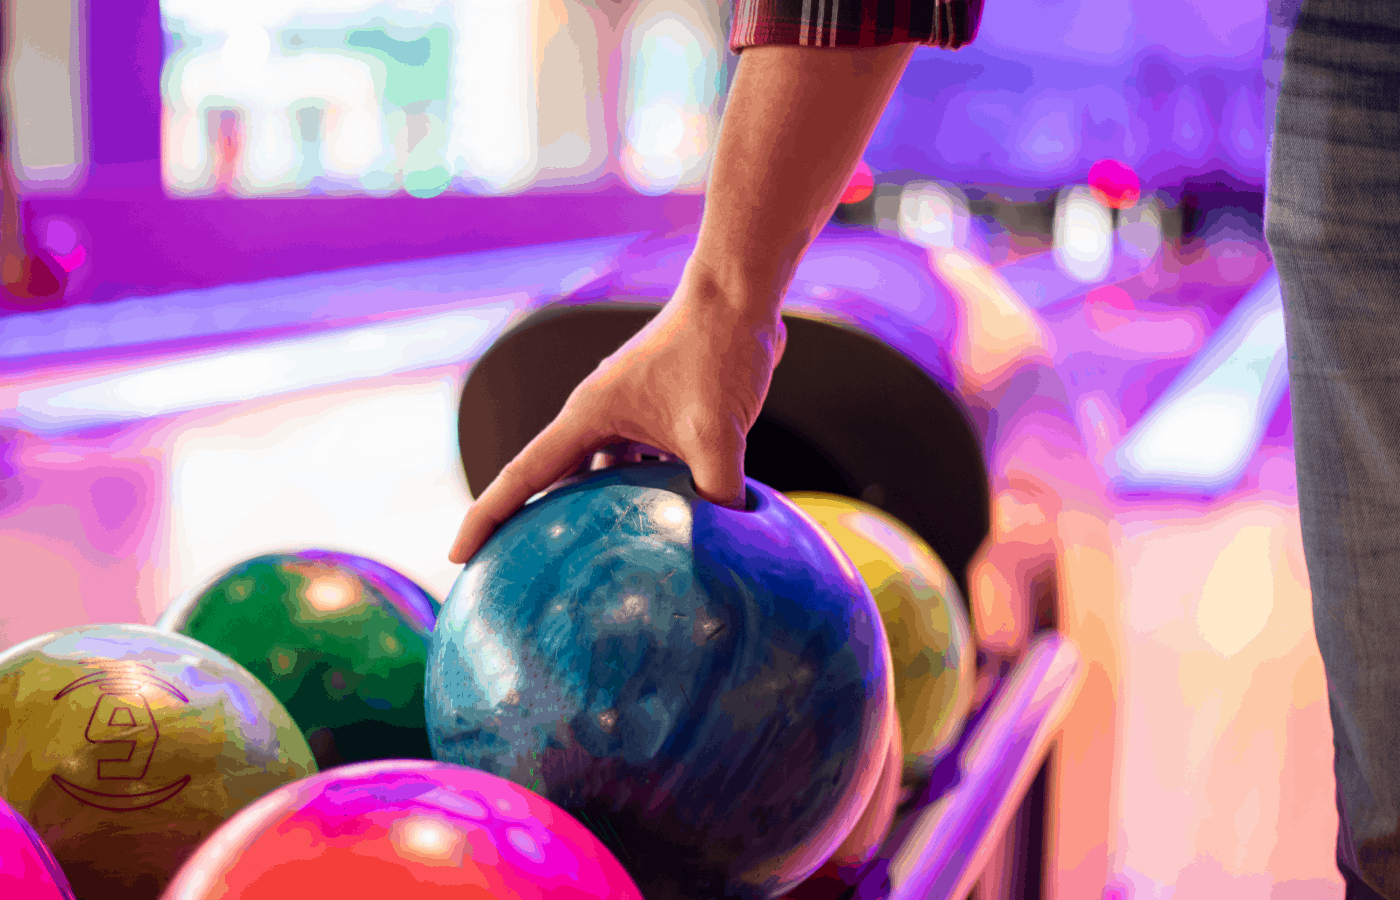 How Tight Should Your Fingers Be in a Bowling Ball